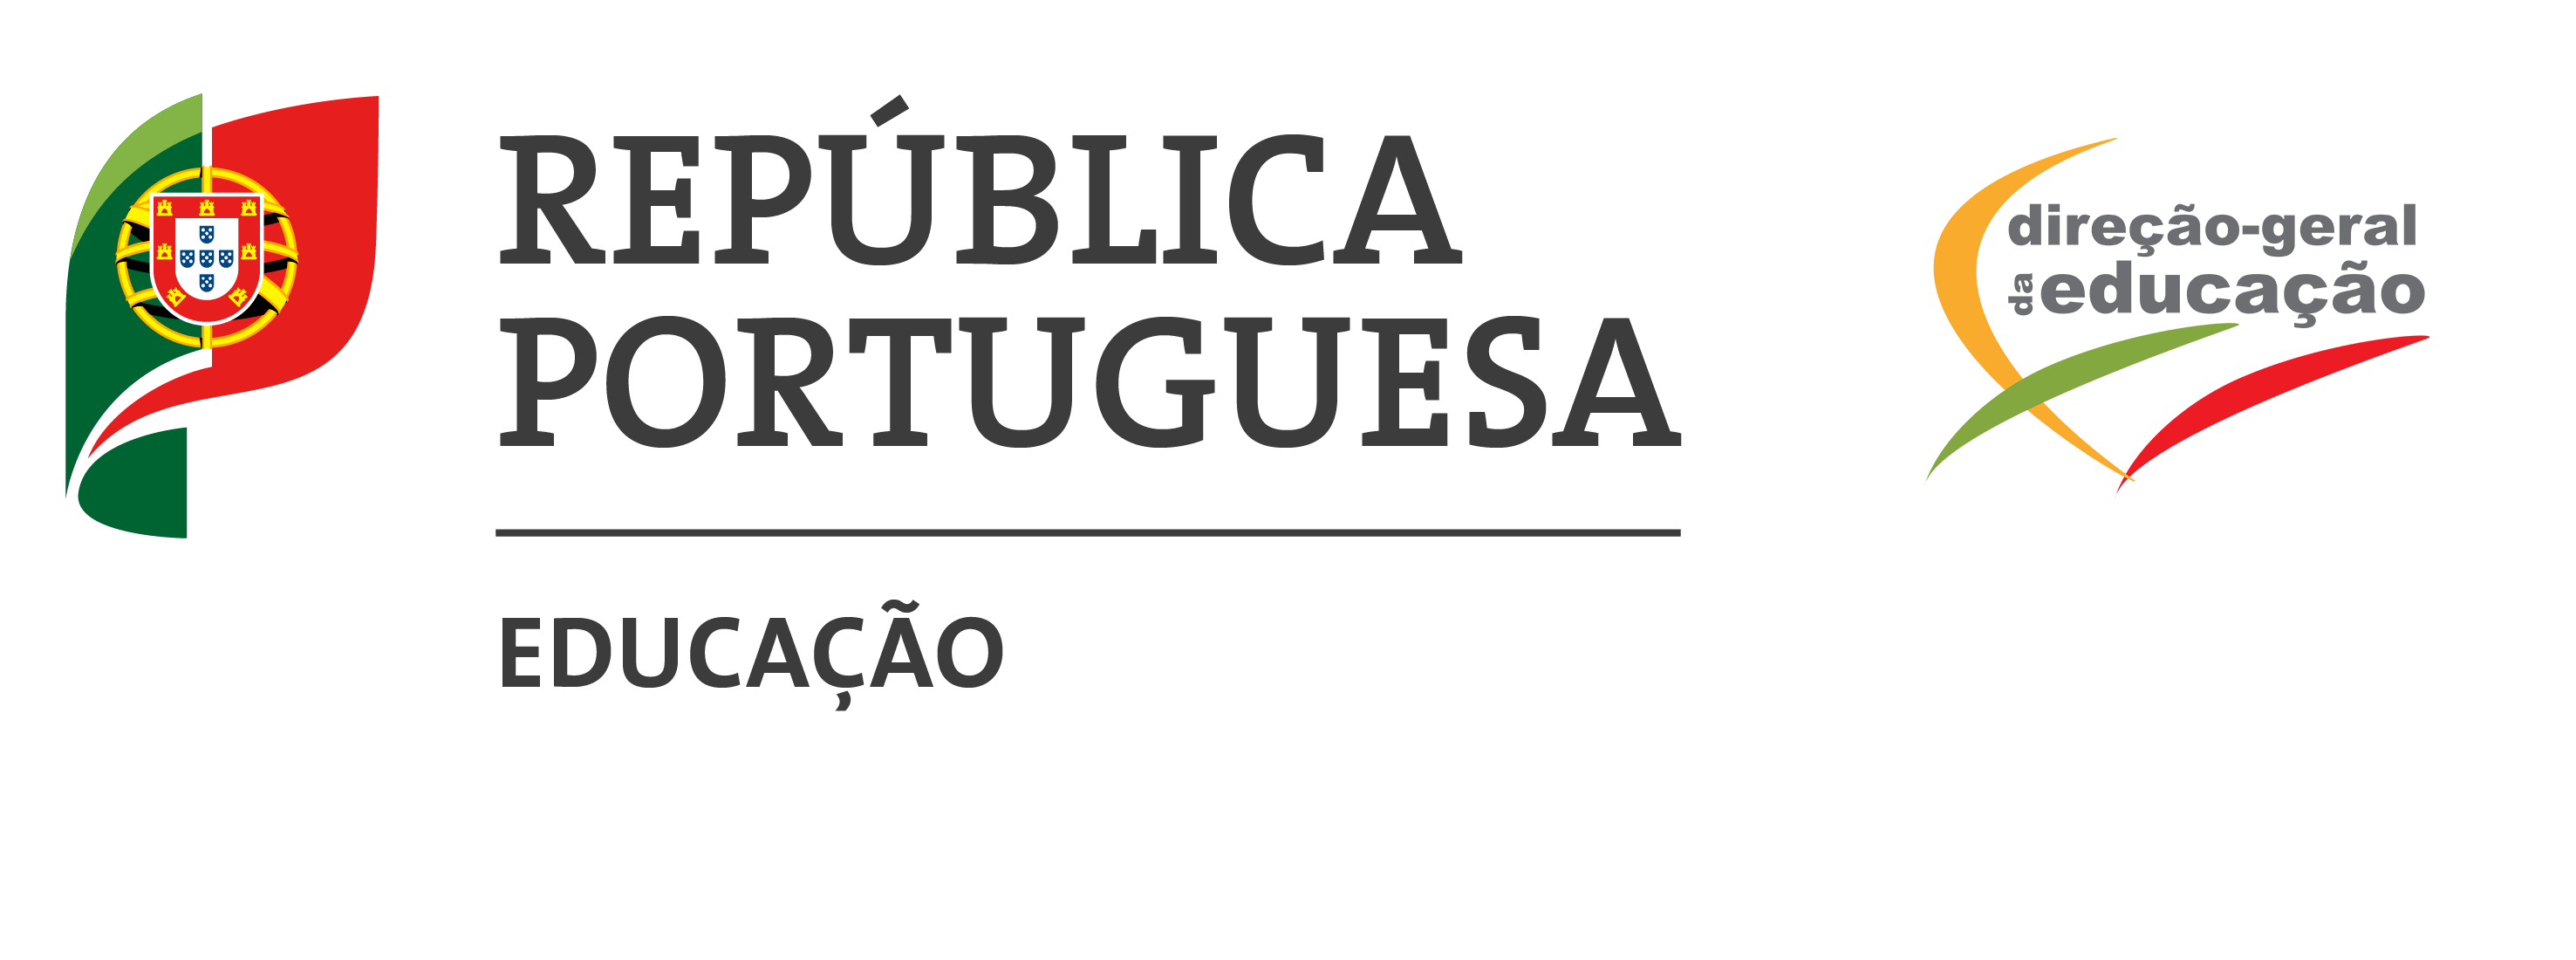 Digital_PT_4C_V_FC_Educacao_DGE